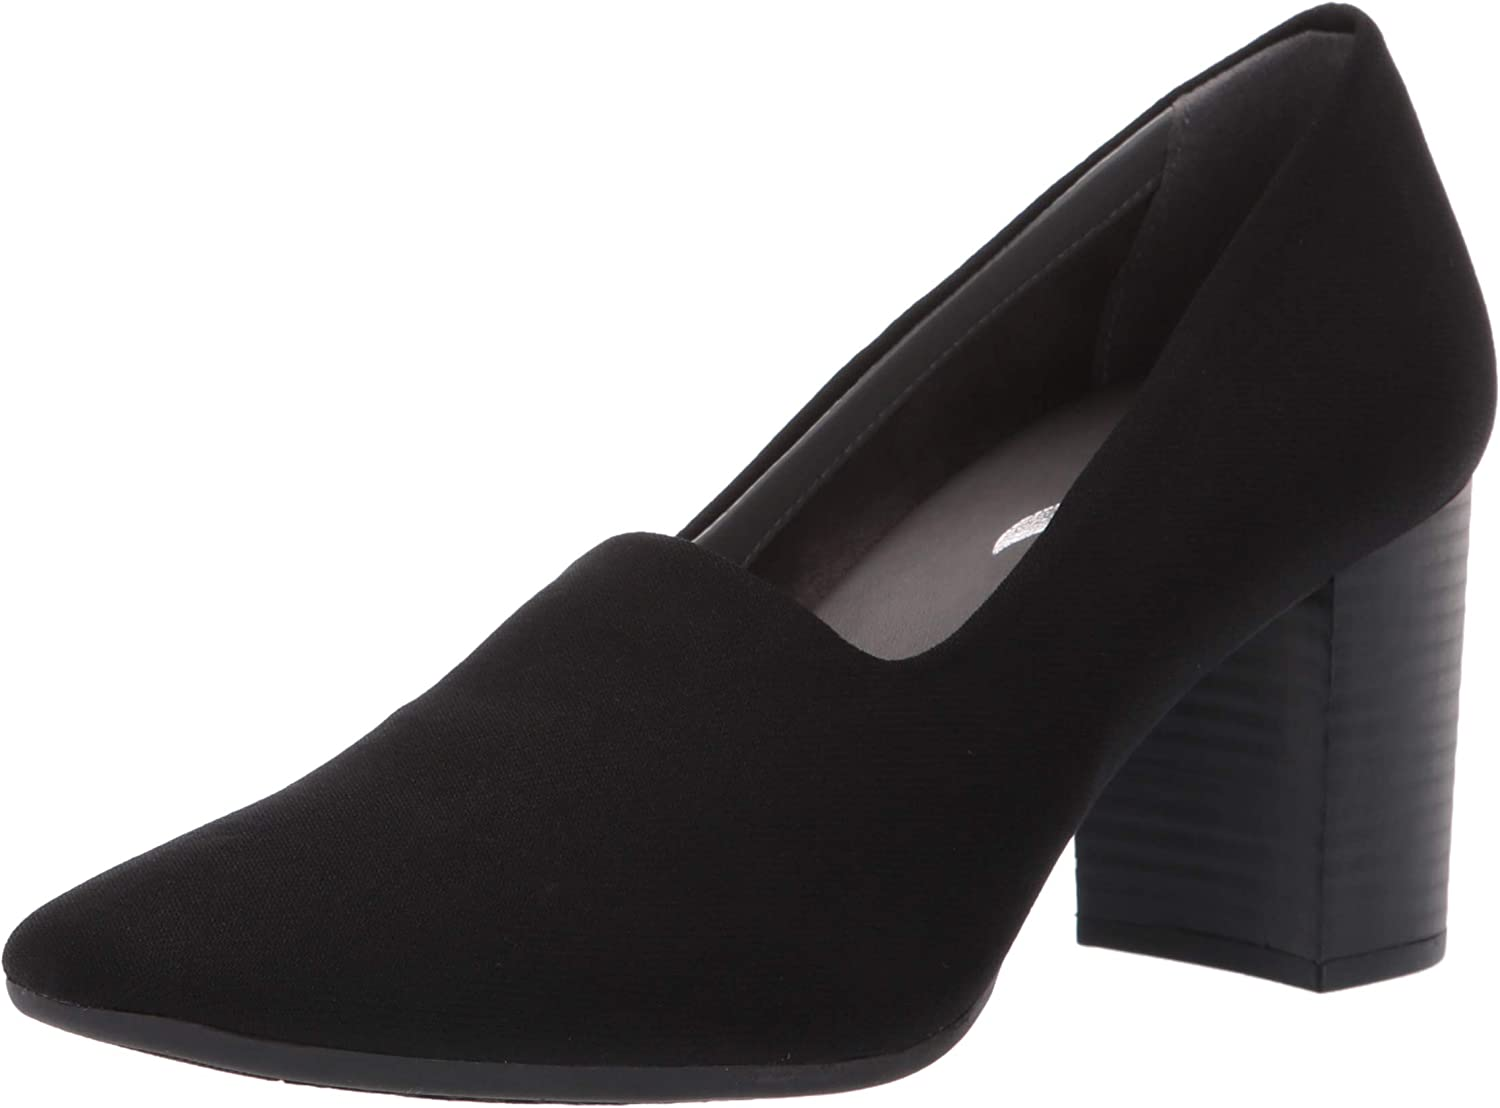 Milwaukee Mall Aerosoles Women's A surprise price is realized Stone Pump Age